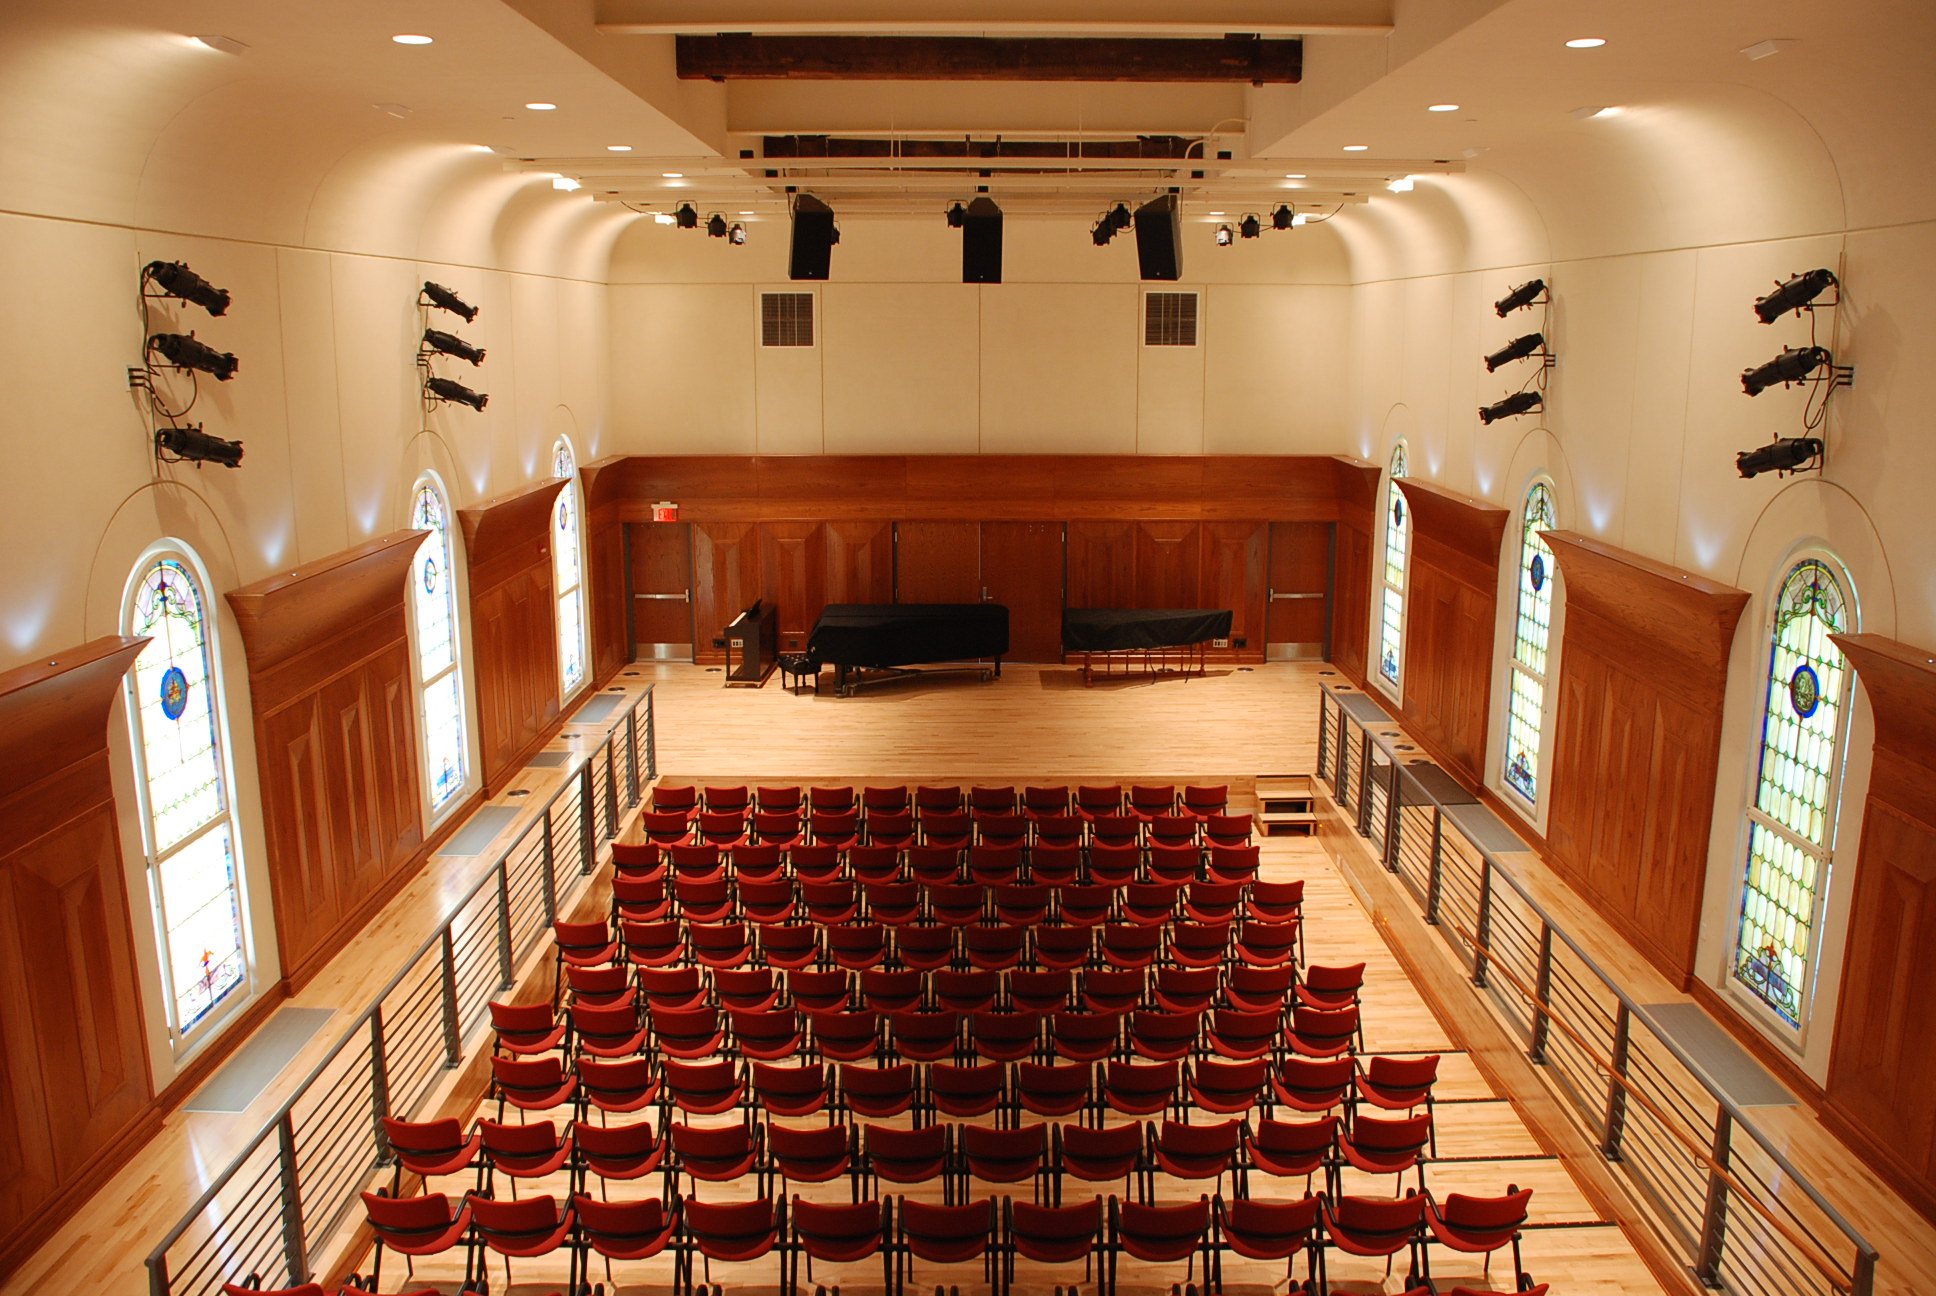 large auditorium with speakers